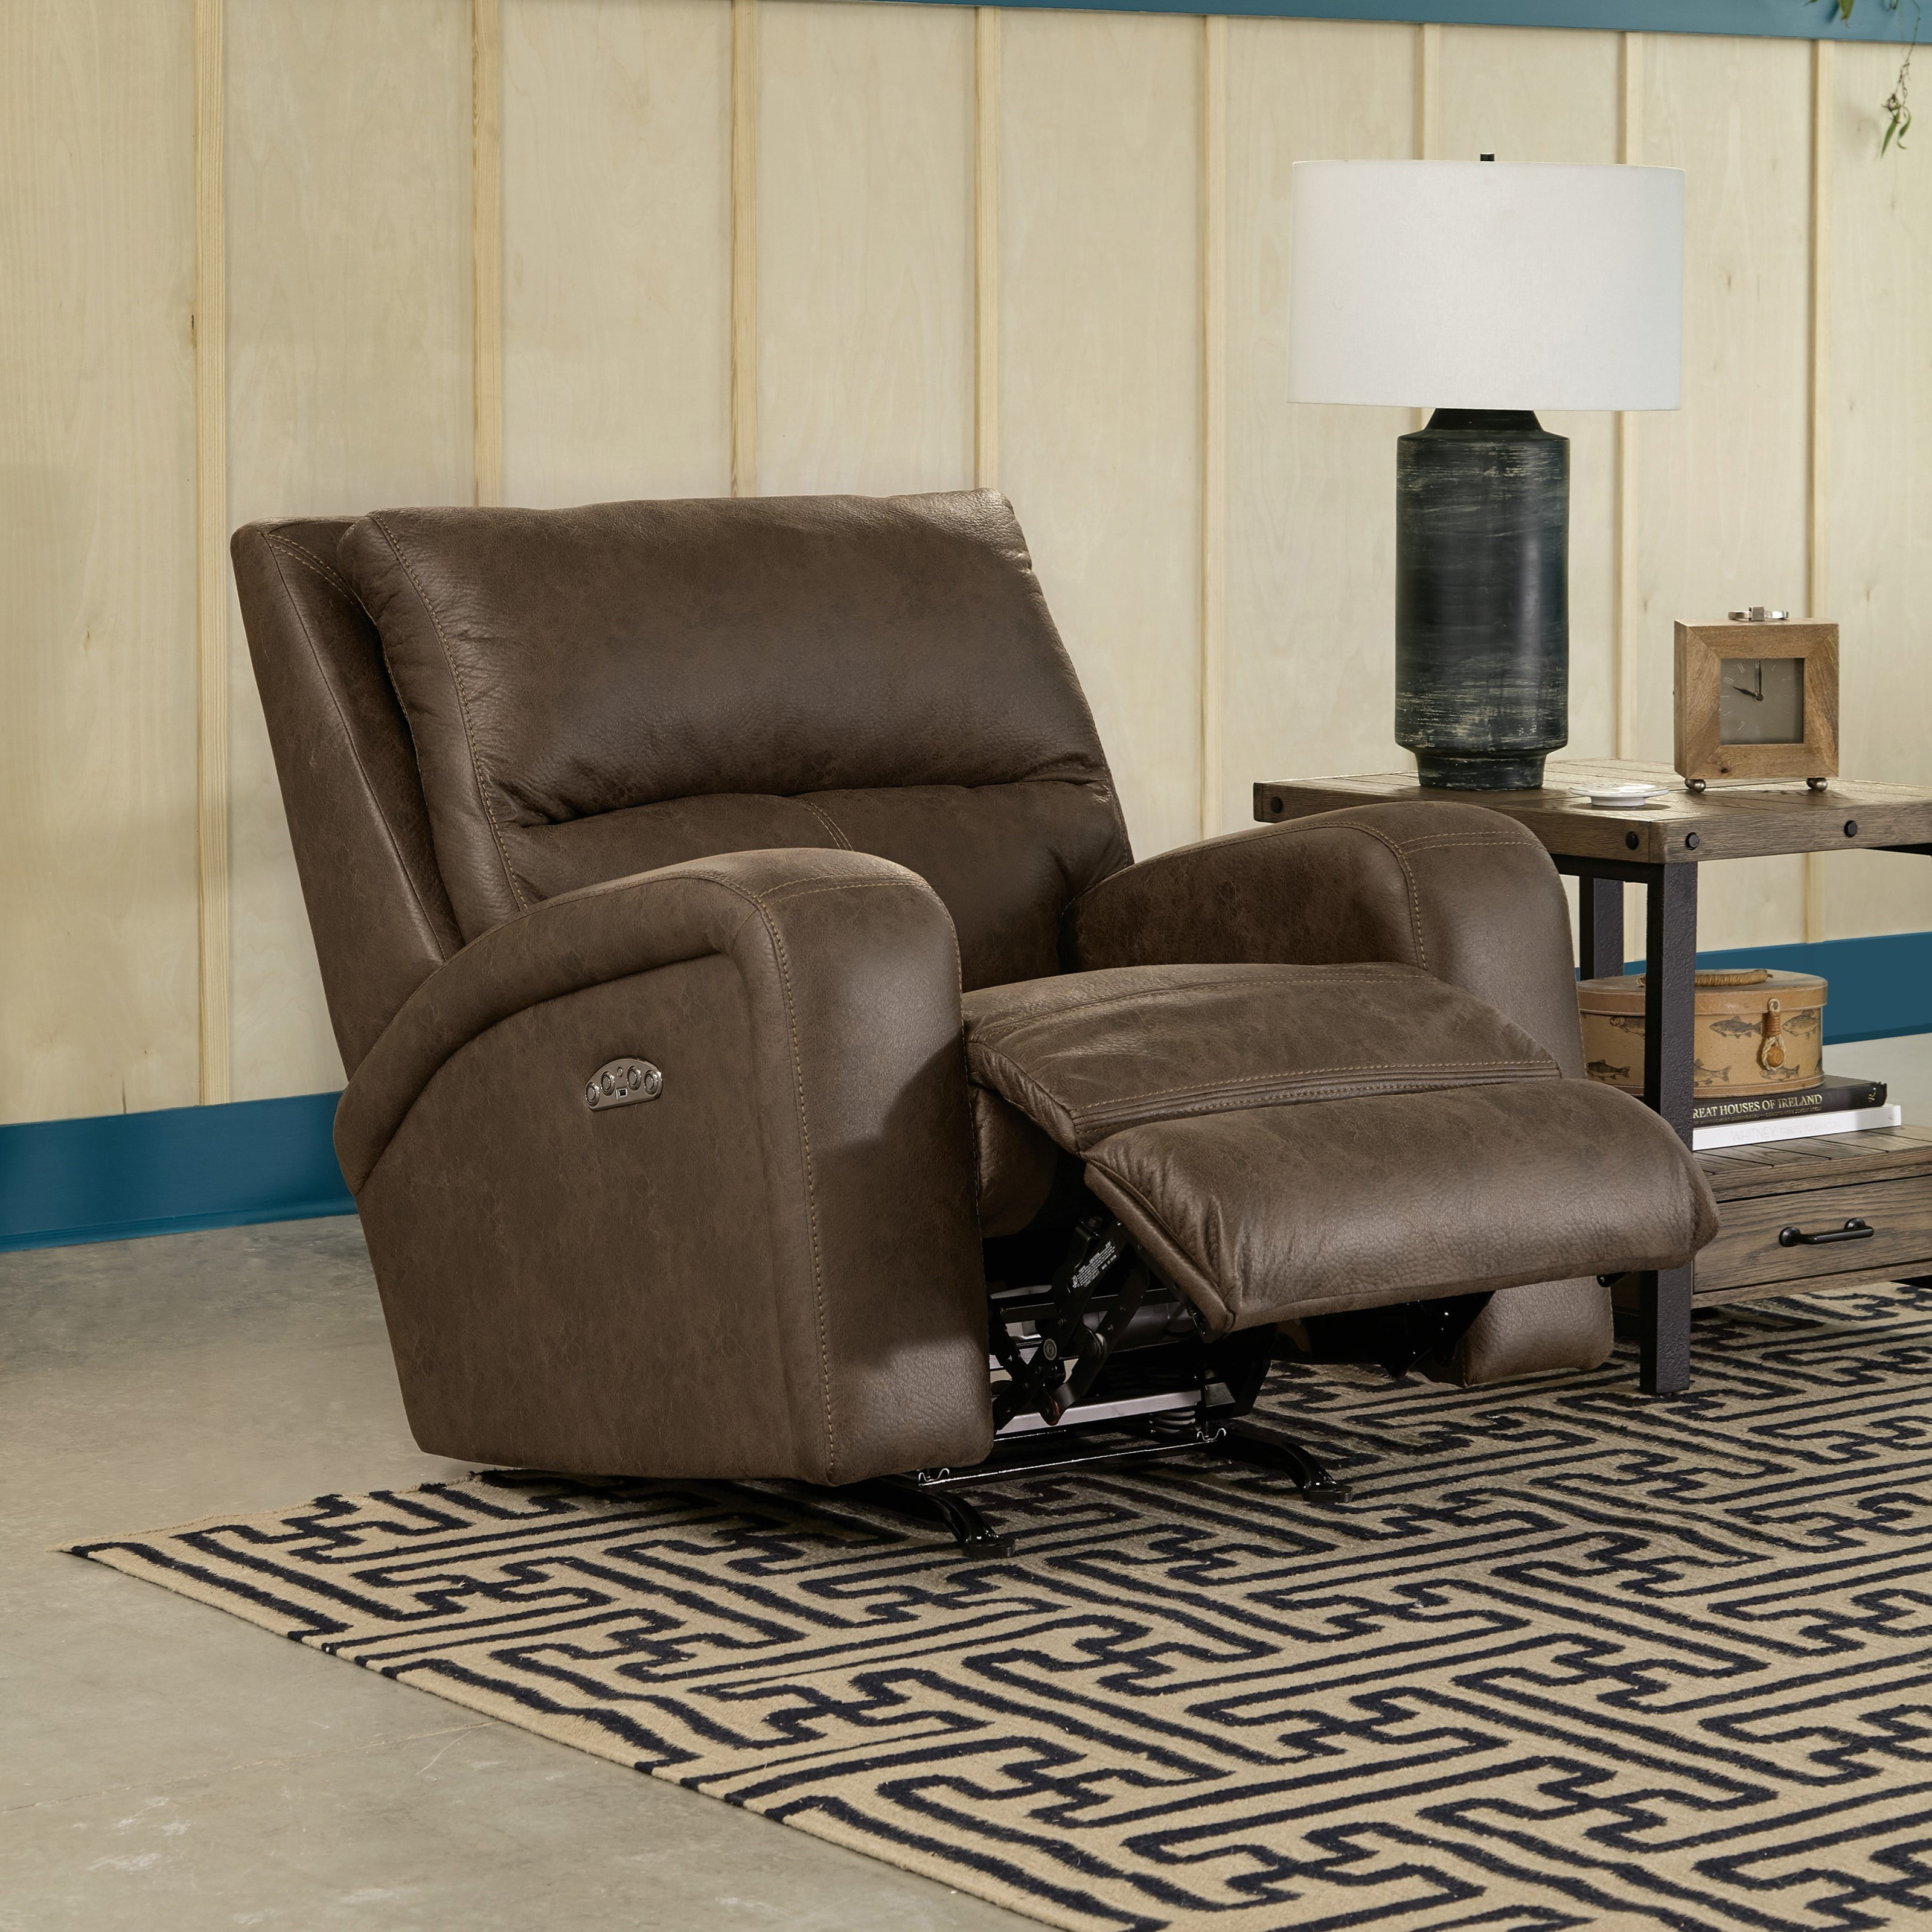 EZ2200 Power Rocker Recliner by England at SuperStore